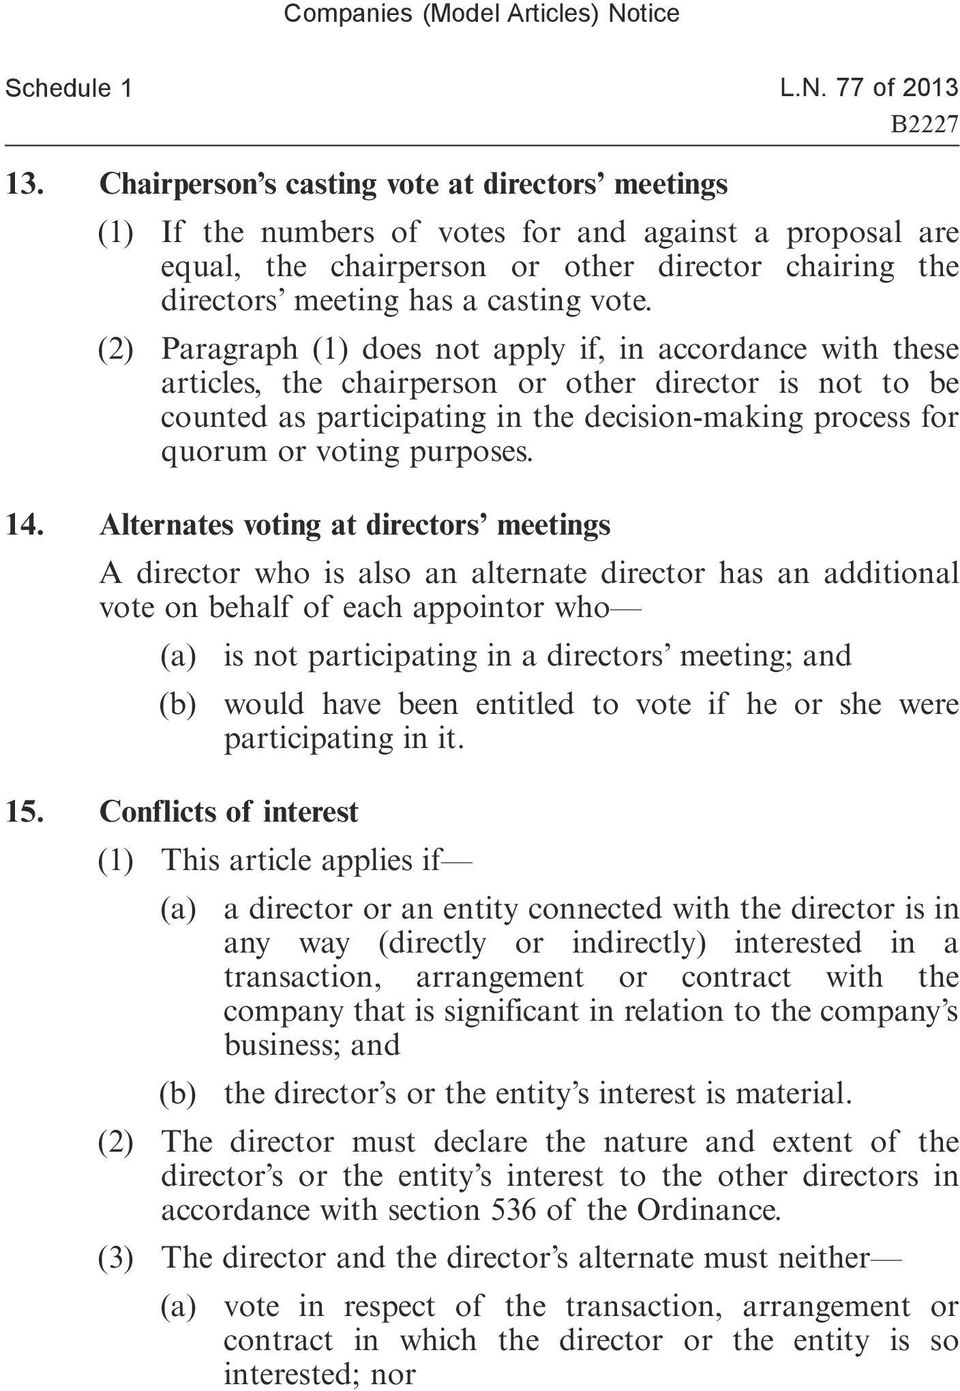 (2) Paragraph (1) does not apply if, in accordance with these articles, the chairperson or other director is not to be counted as participating in the decision-making process for quorum or voting